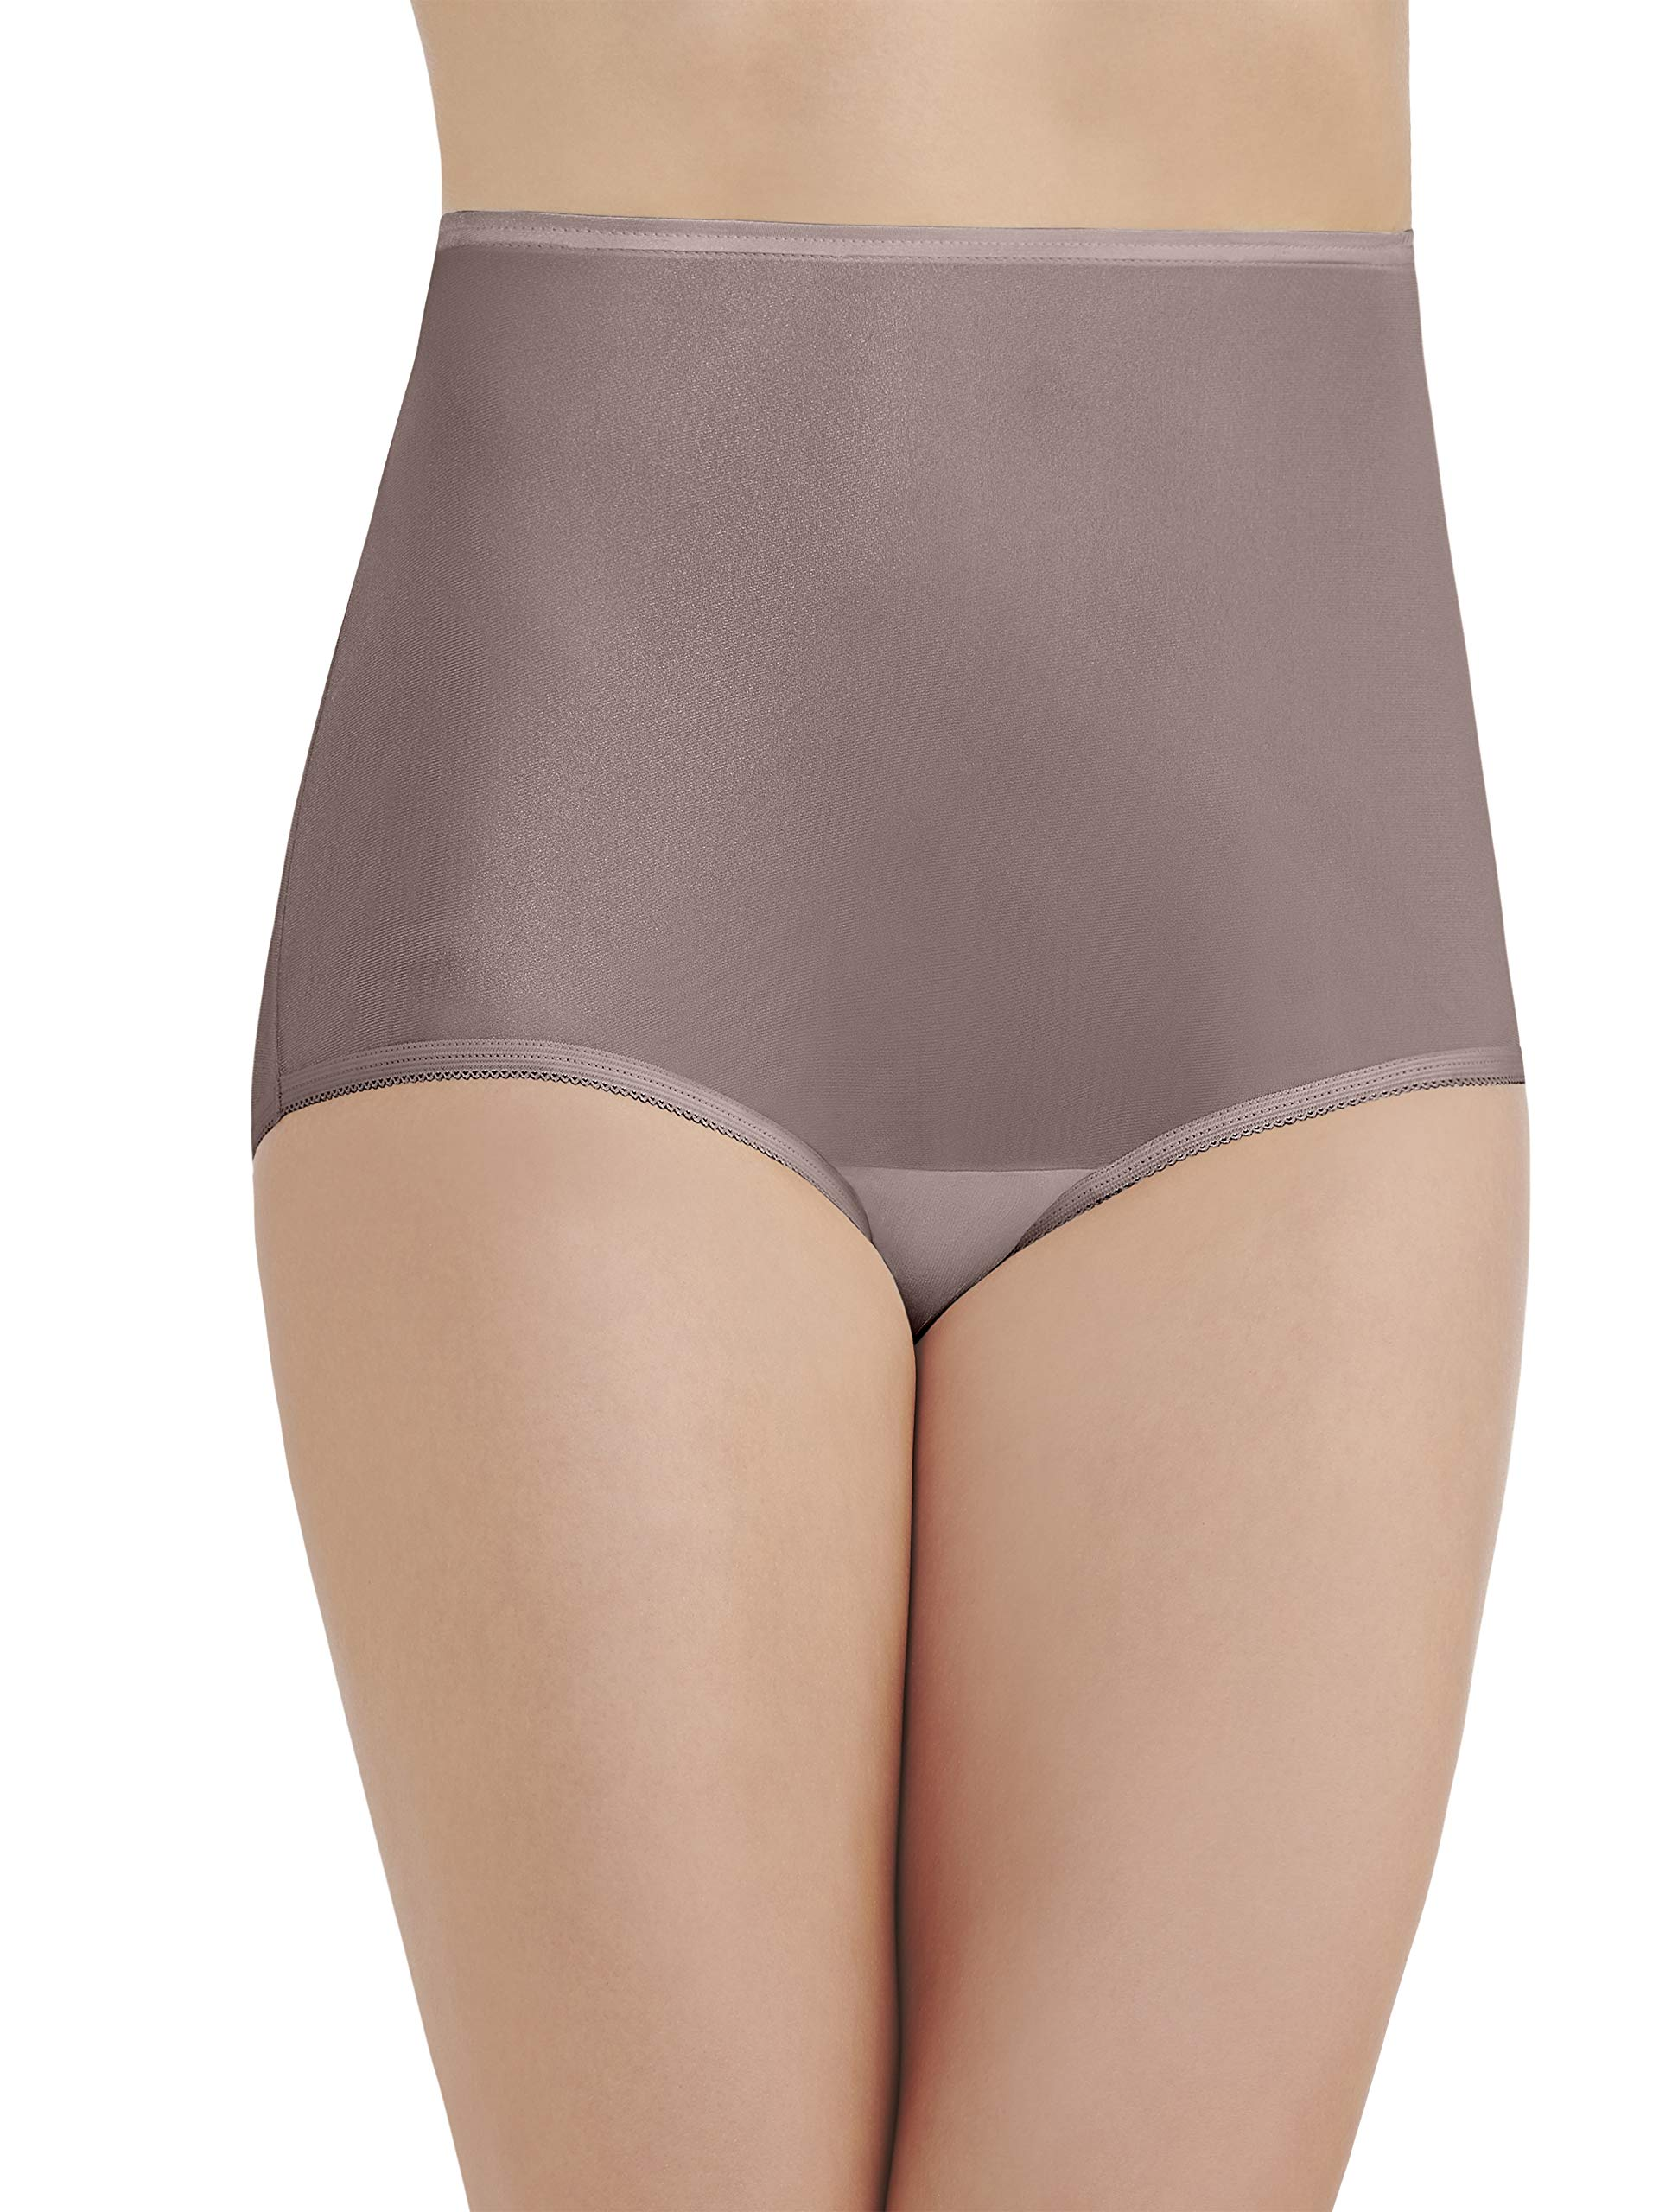 324426a67d1 Vanity Fair Women's Perfectly Yours Ravissant Tailored Nylon Brief Panty  15712 product image